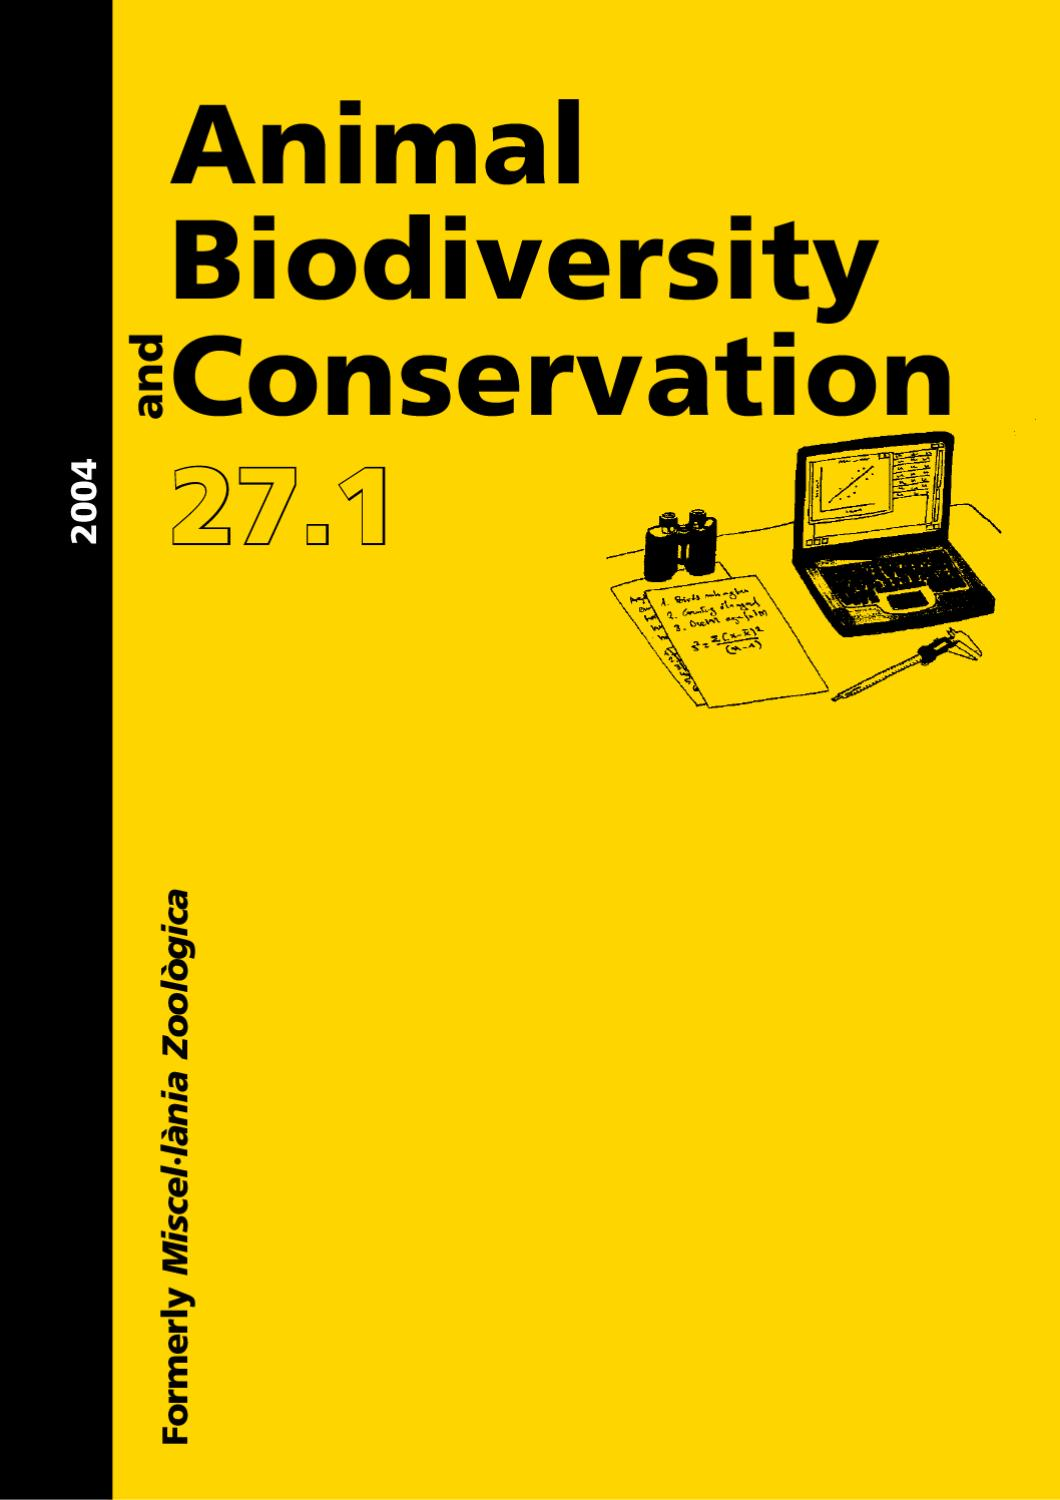 Animal Biodiversity and Conservation issue 27.1 (2) (2004) pp 297 ...